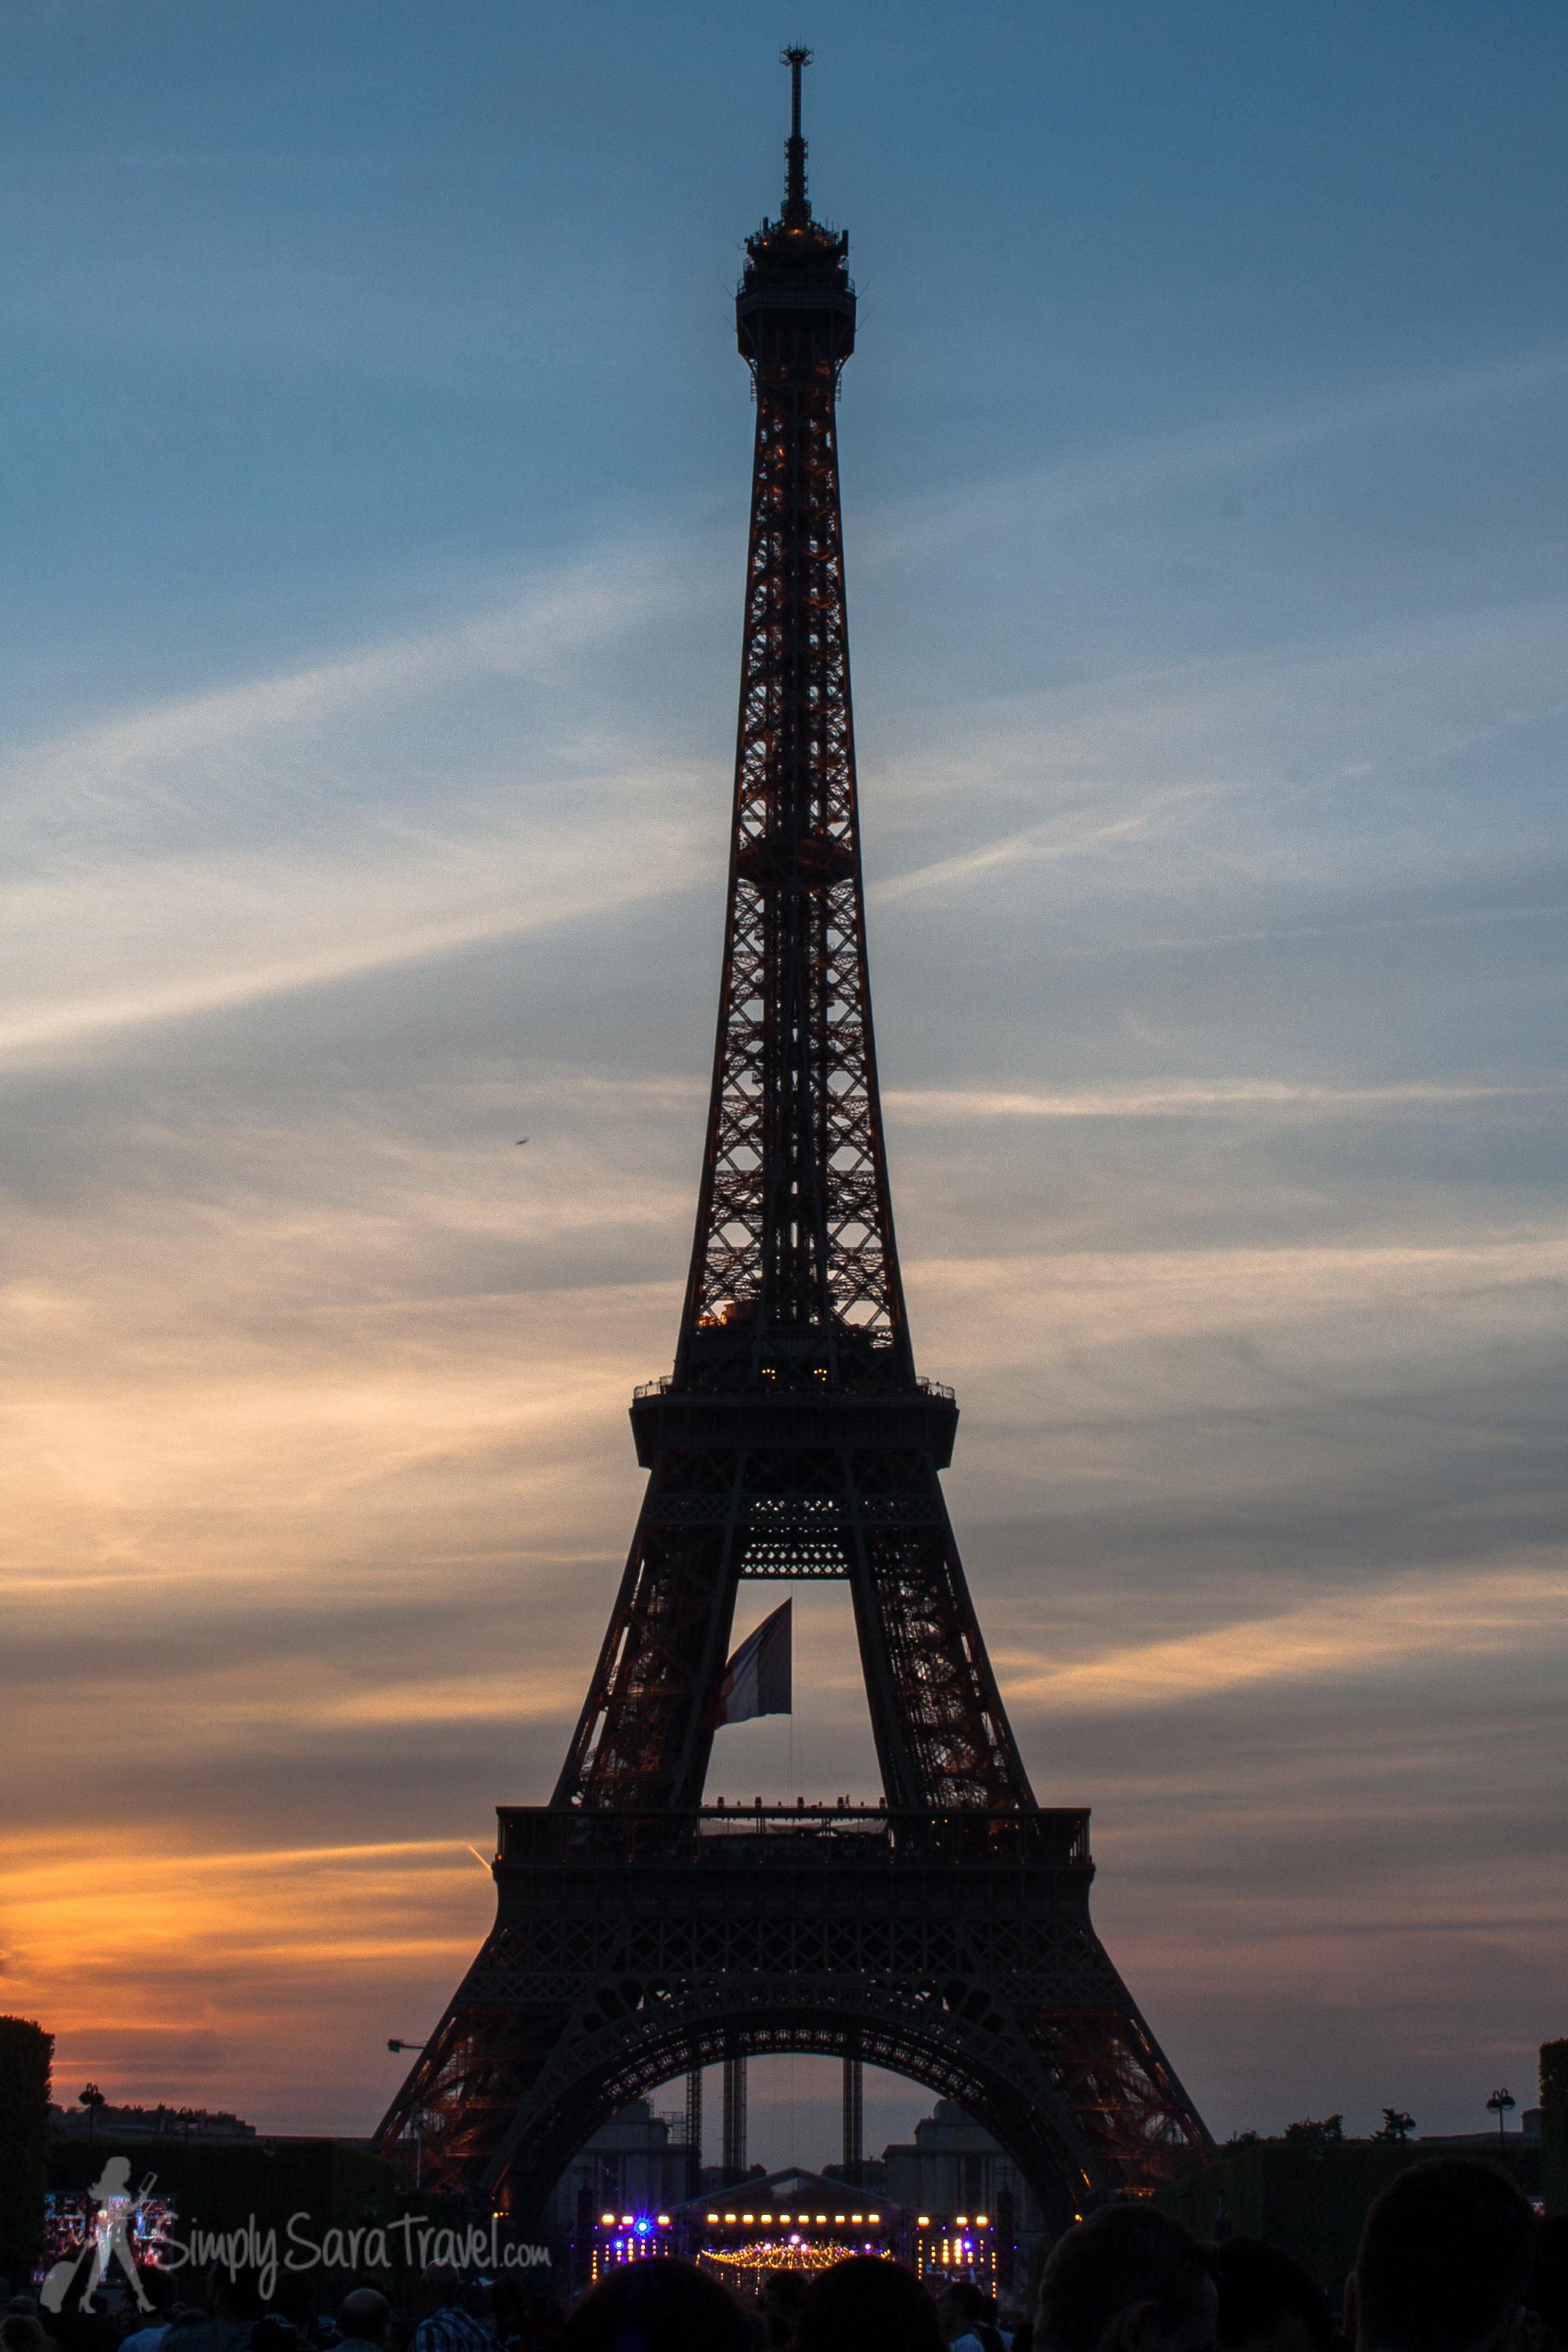 Sunset at Eiffel Tower on Bastille Day